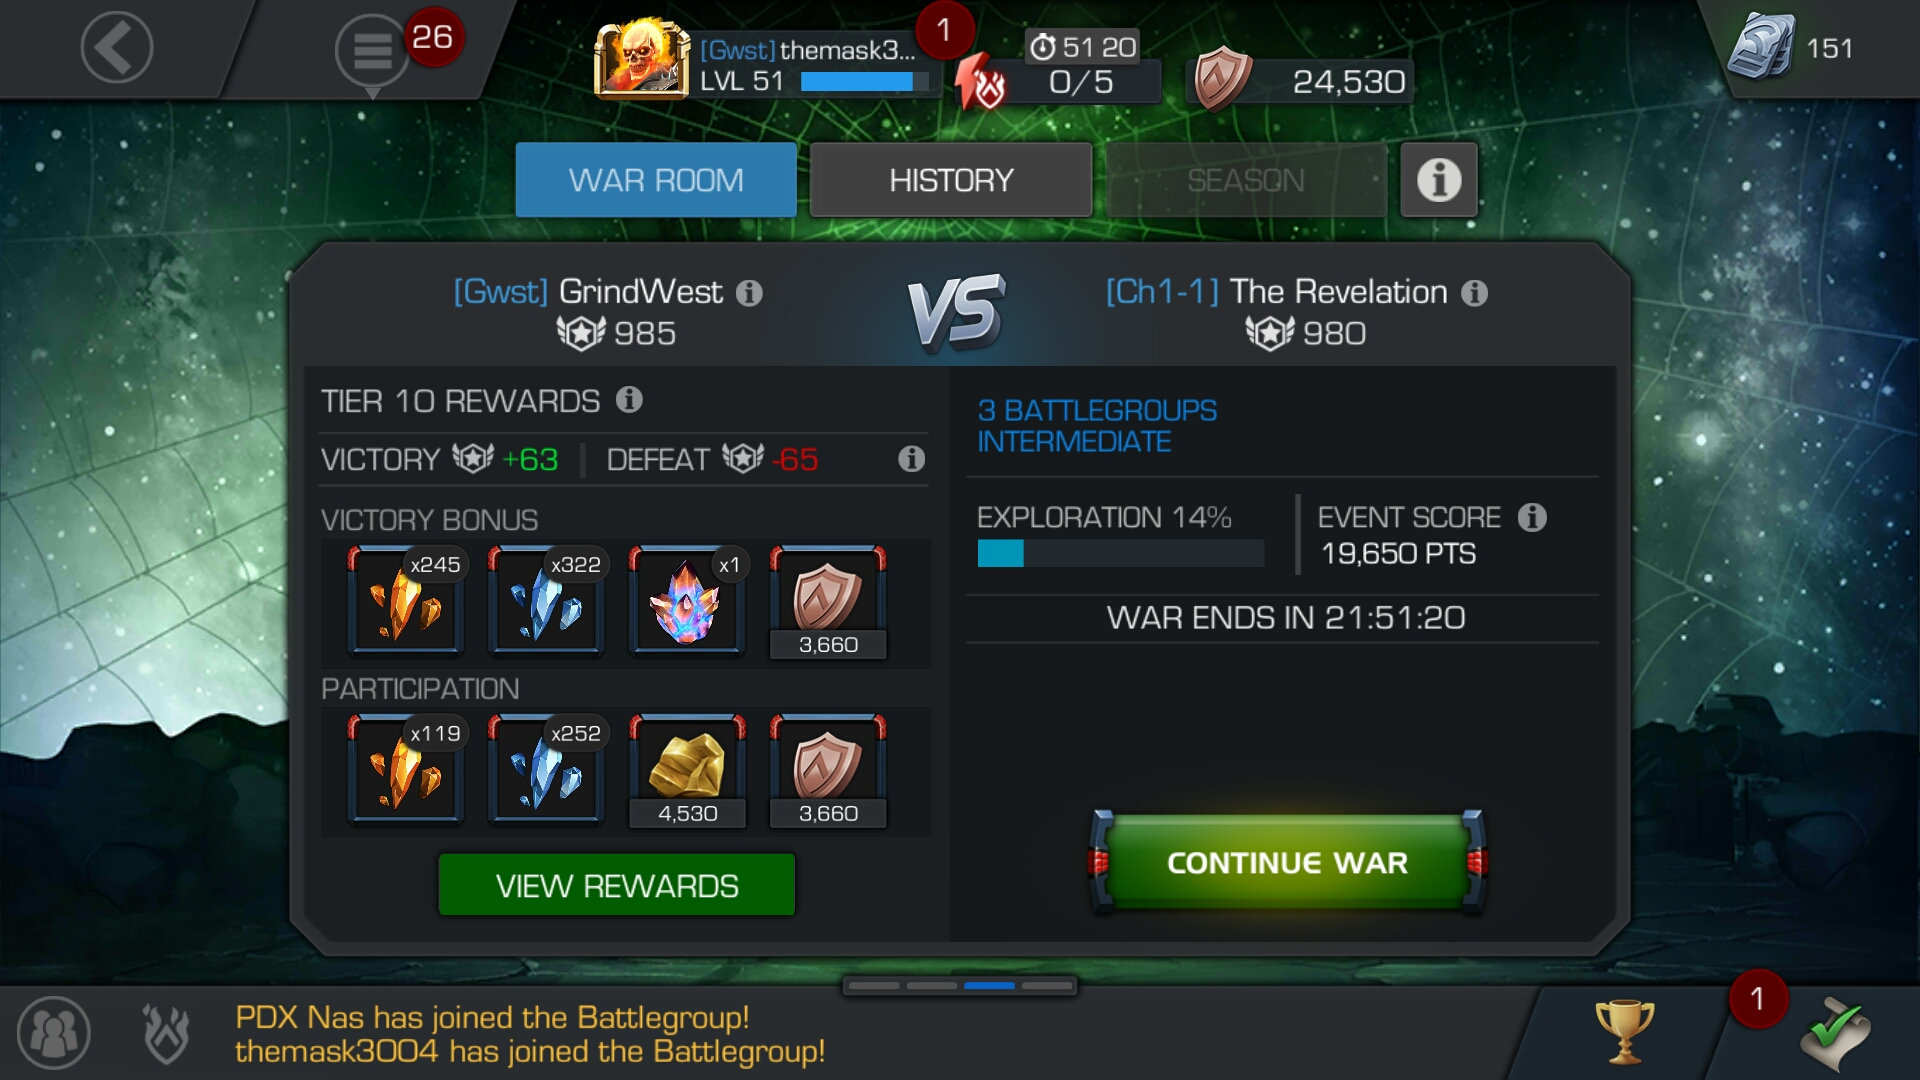 aw skill based matchmaking